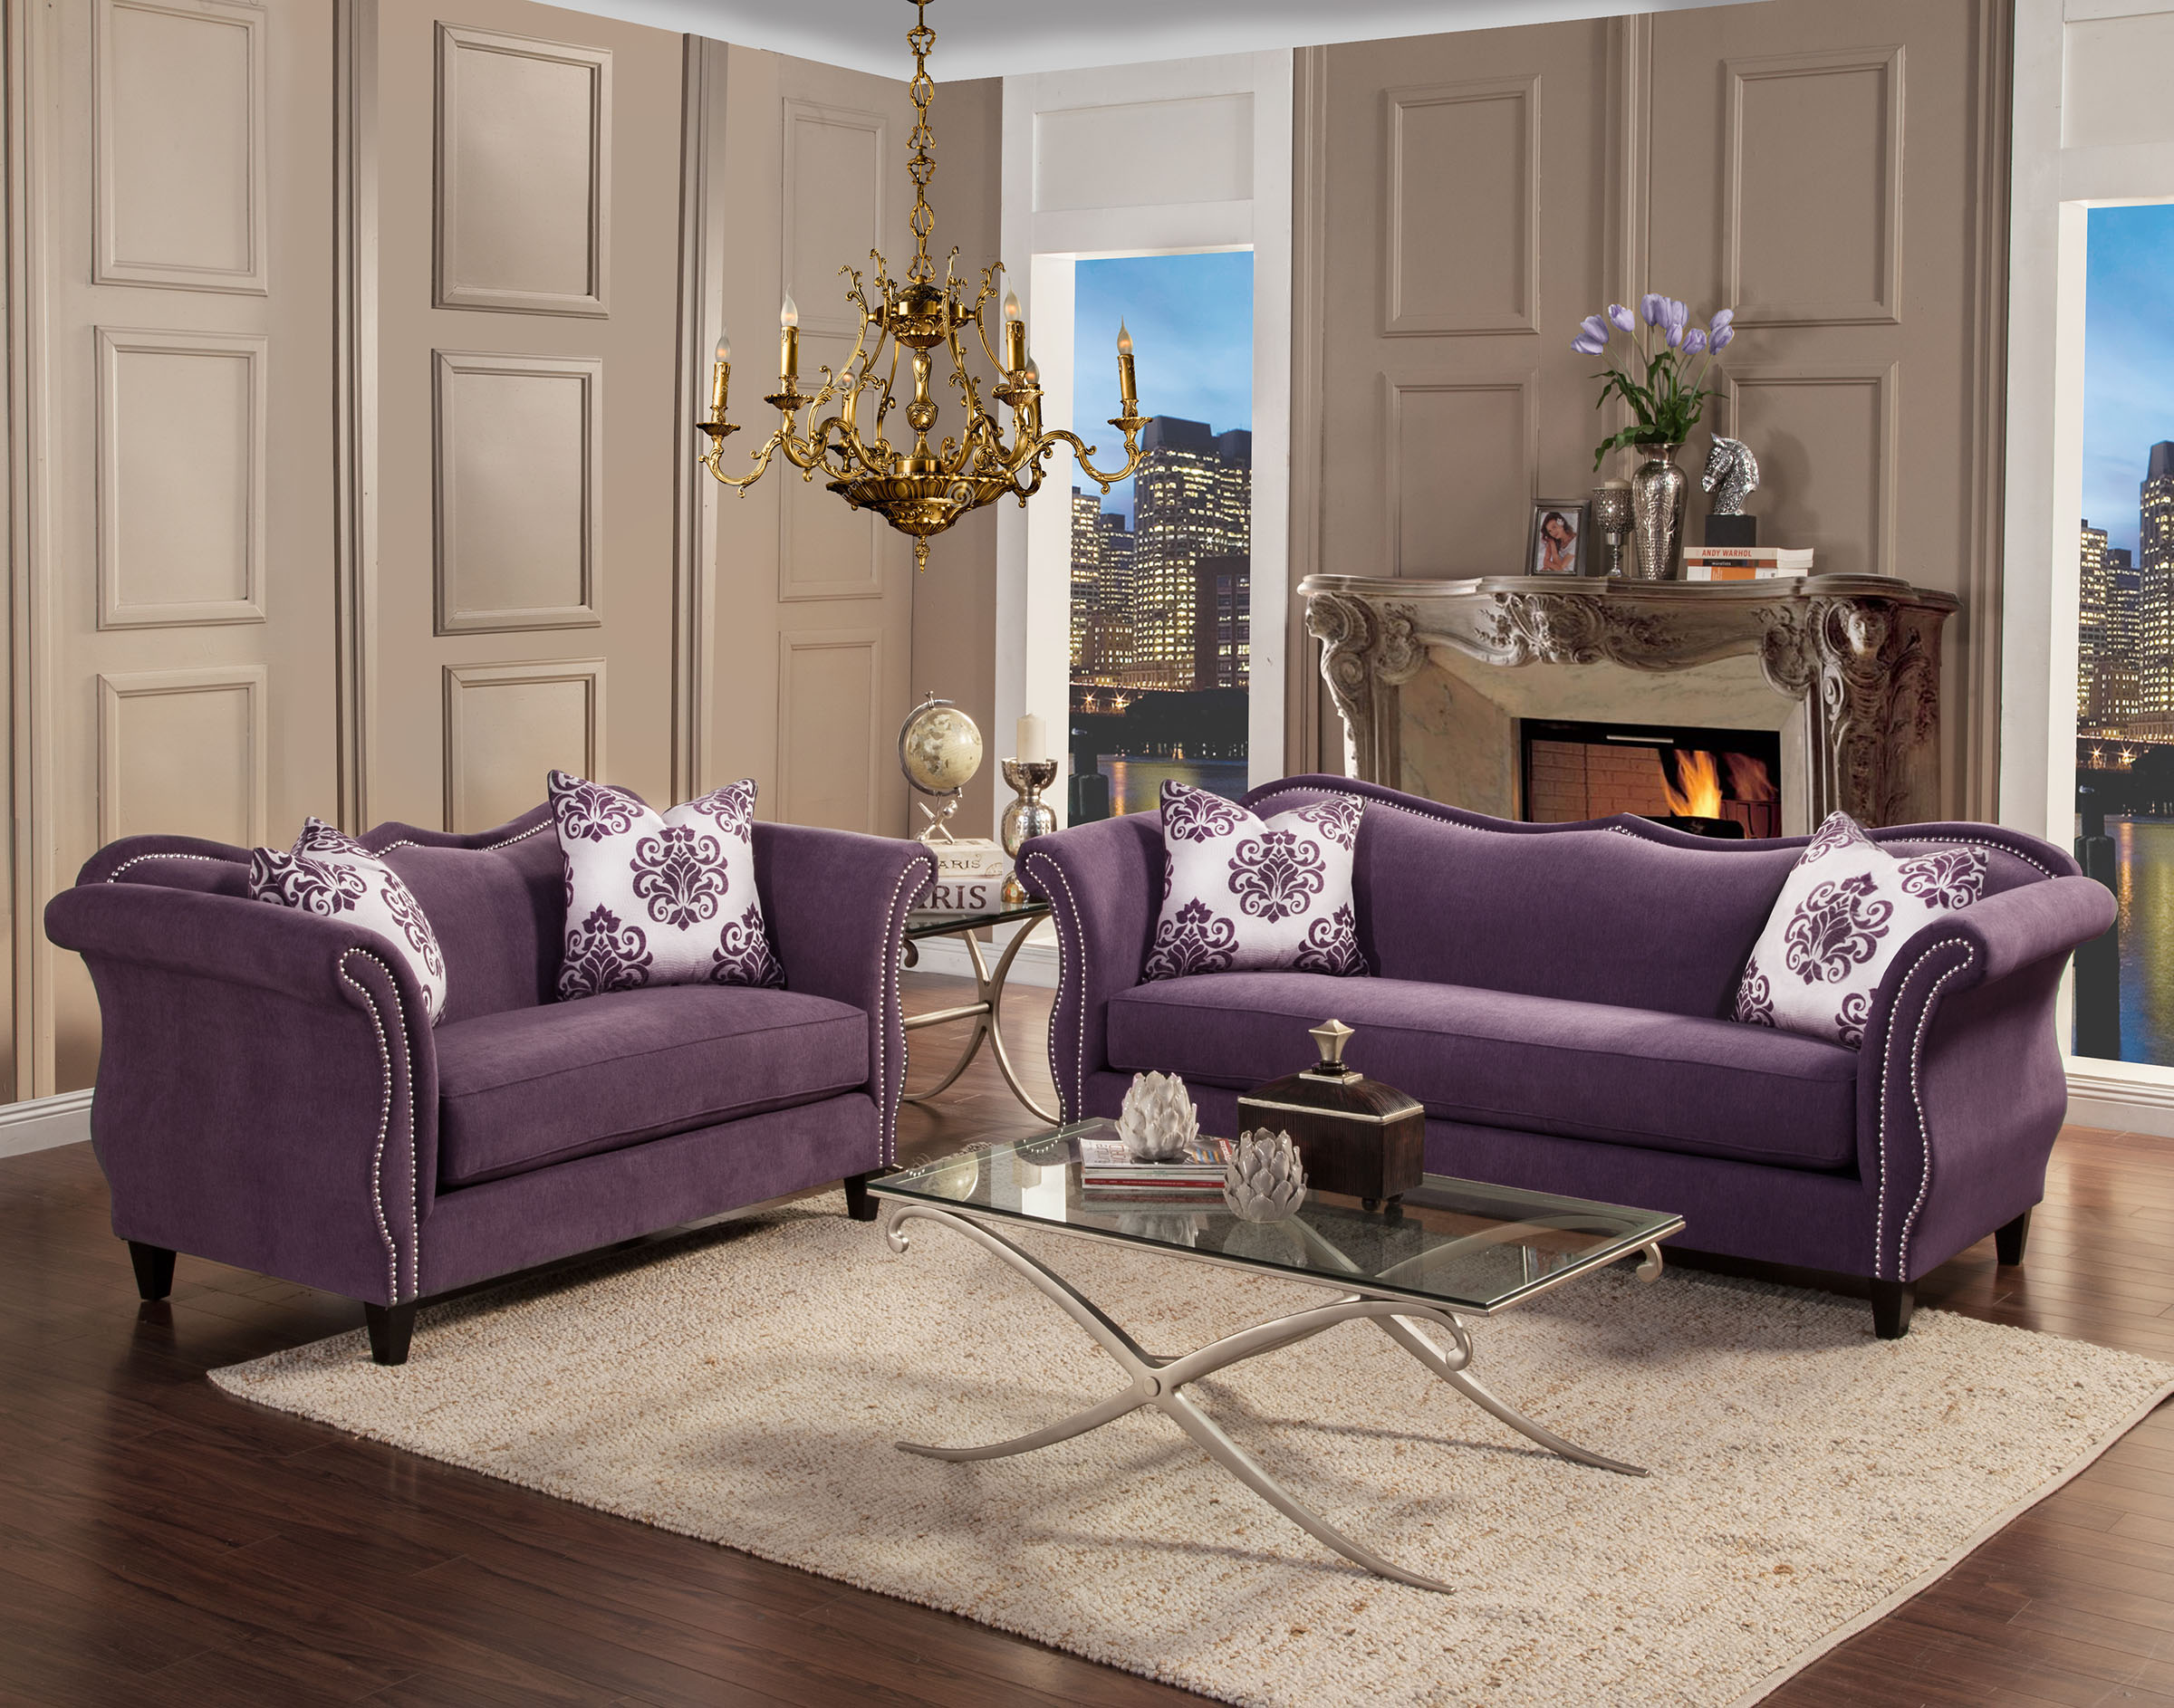 Remarkable Foa Furniture Of America Zaffiro Lavender Sofa Loveseat Set Gmtry Best Dining Table And Chair Ideas Images Gmtryco